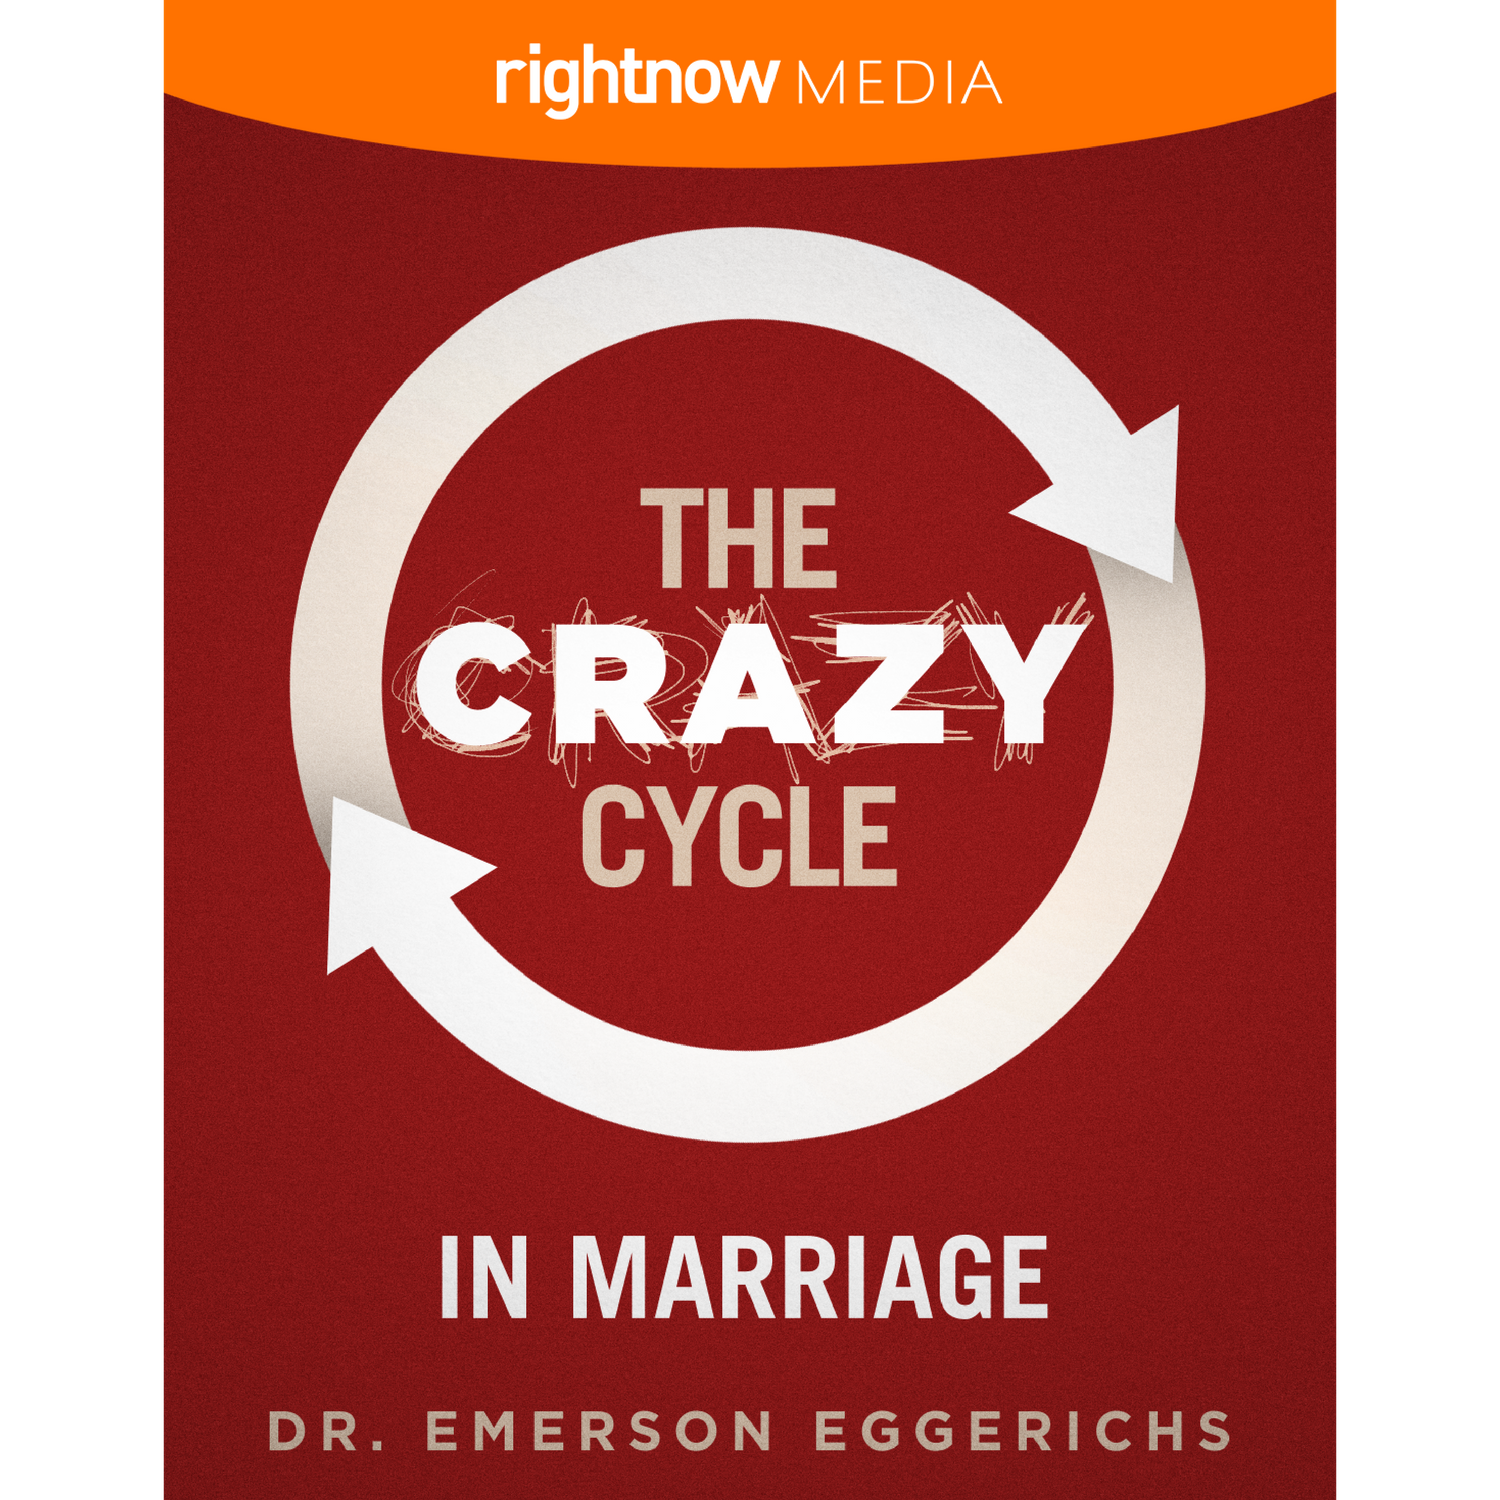 The Crazy Cycle in Marriage; Dr. Emmerson Eggerichs